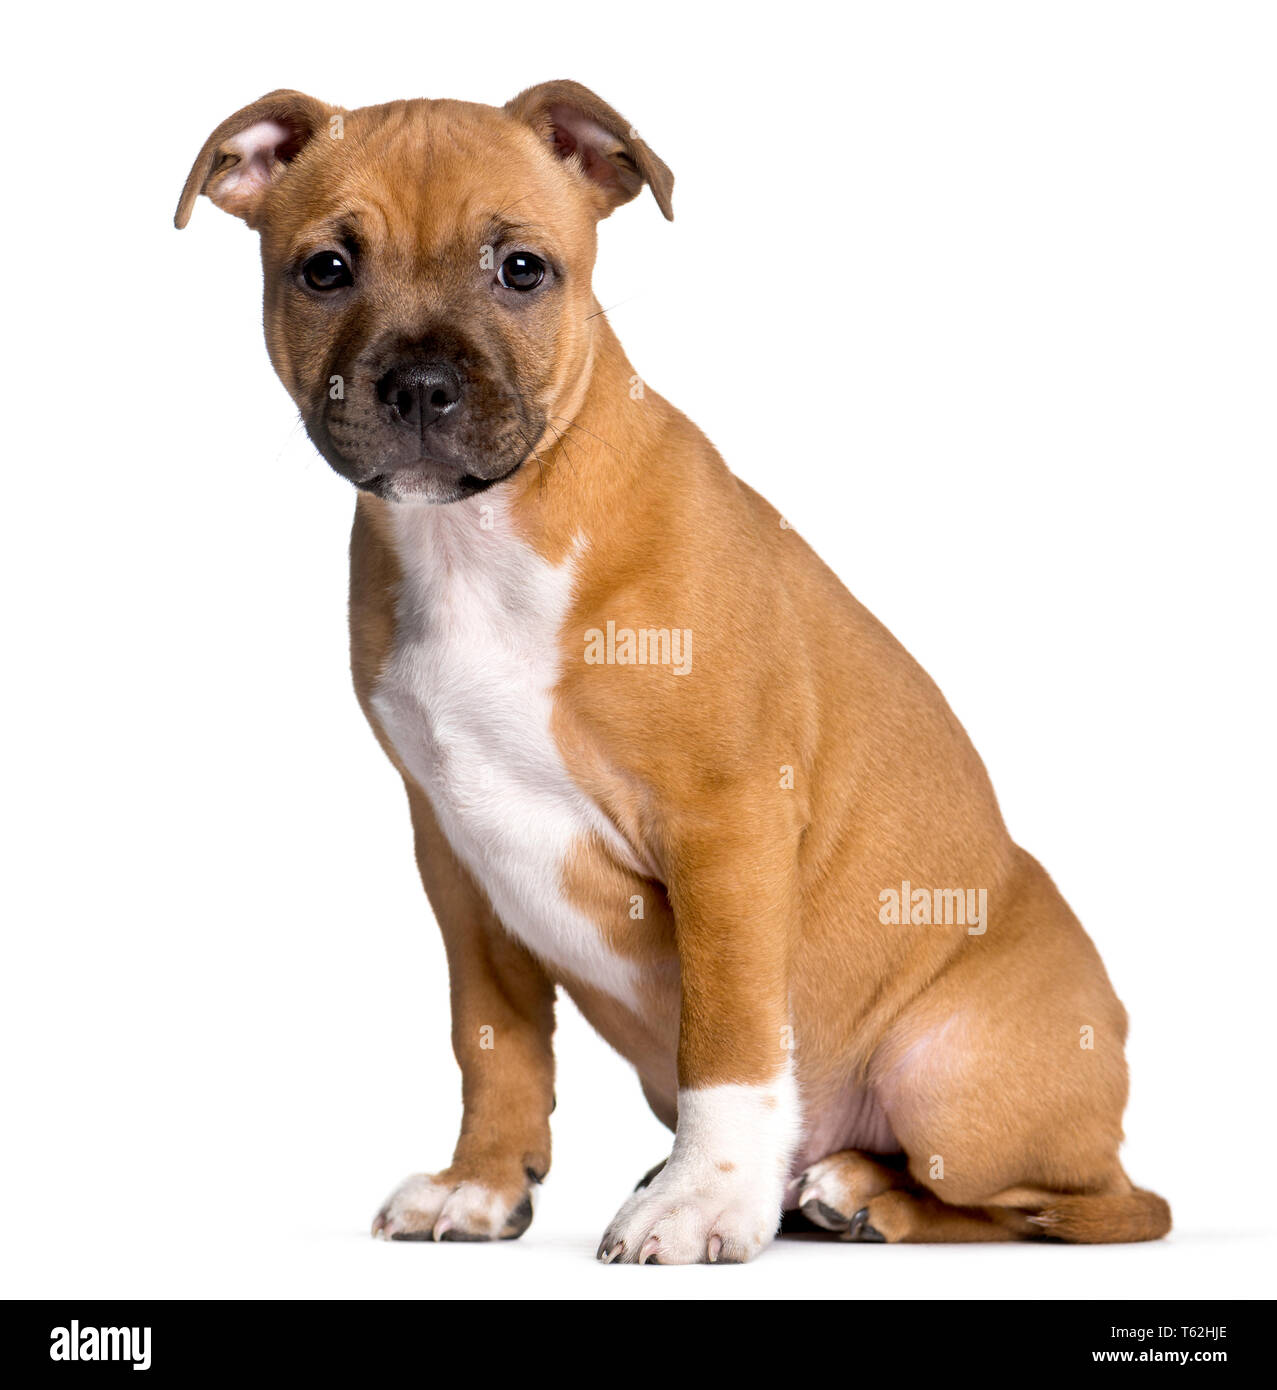 Staffordshire Bull Terrier, 2 months old, sitting in front of white background - Stock Image